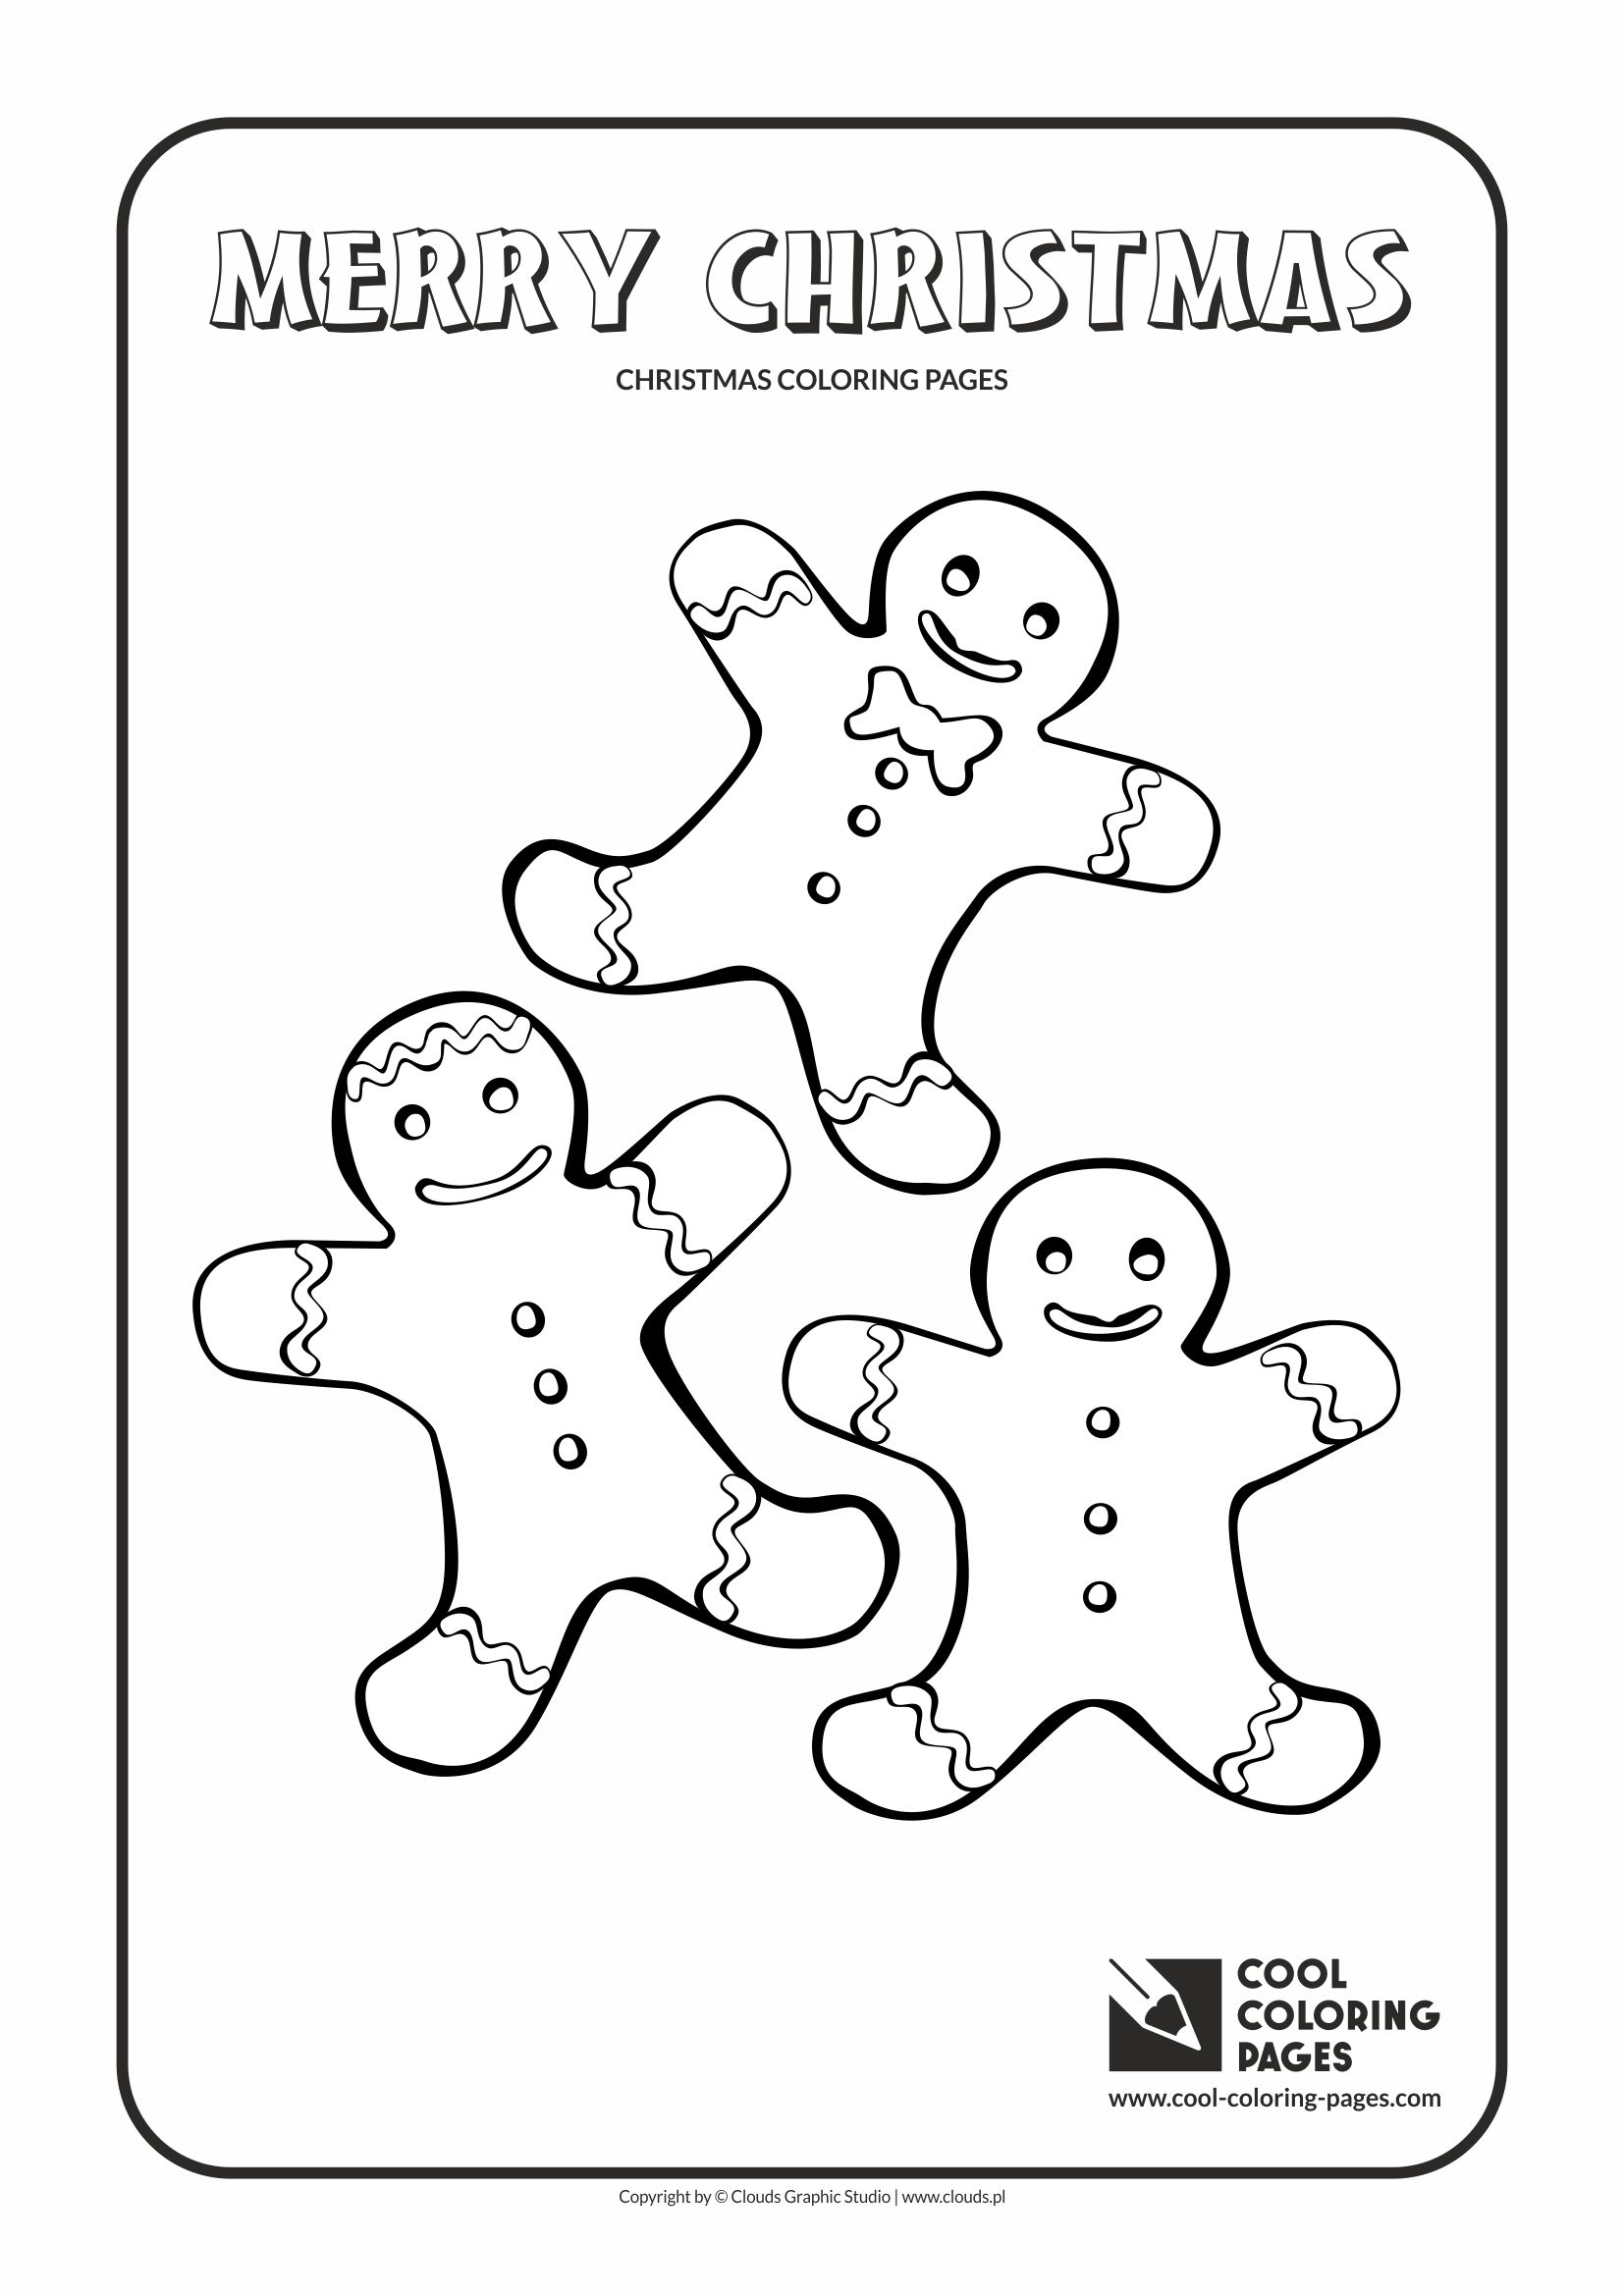 Gingerbread Men Coloring Page Cool Coloring Pages